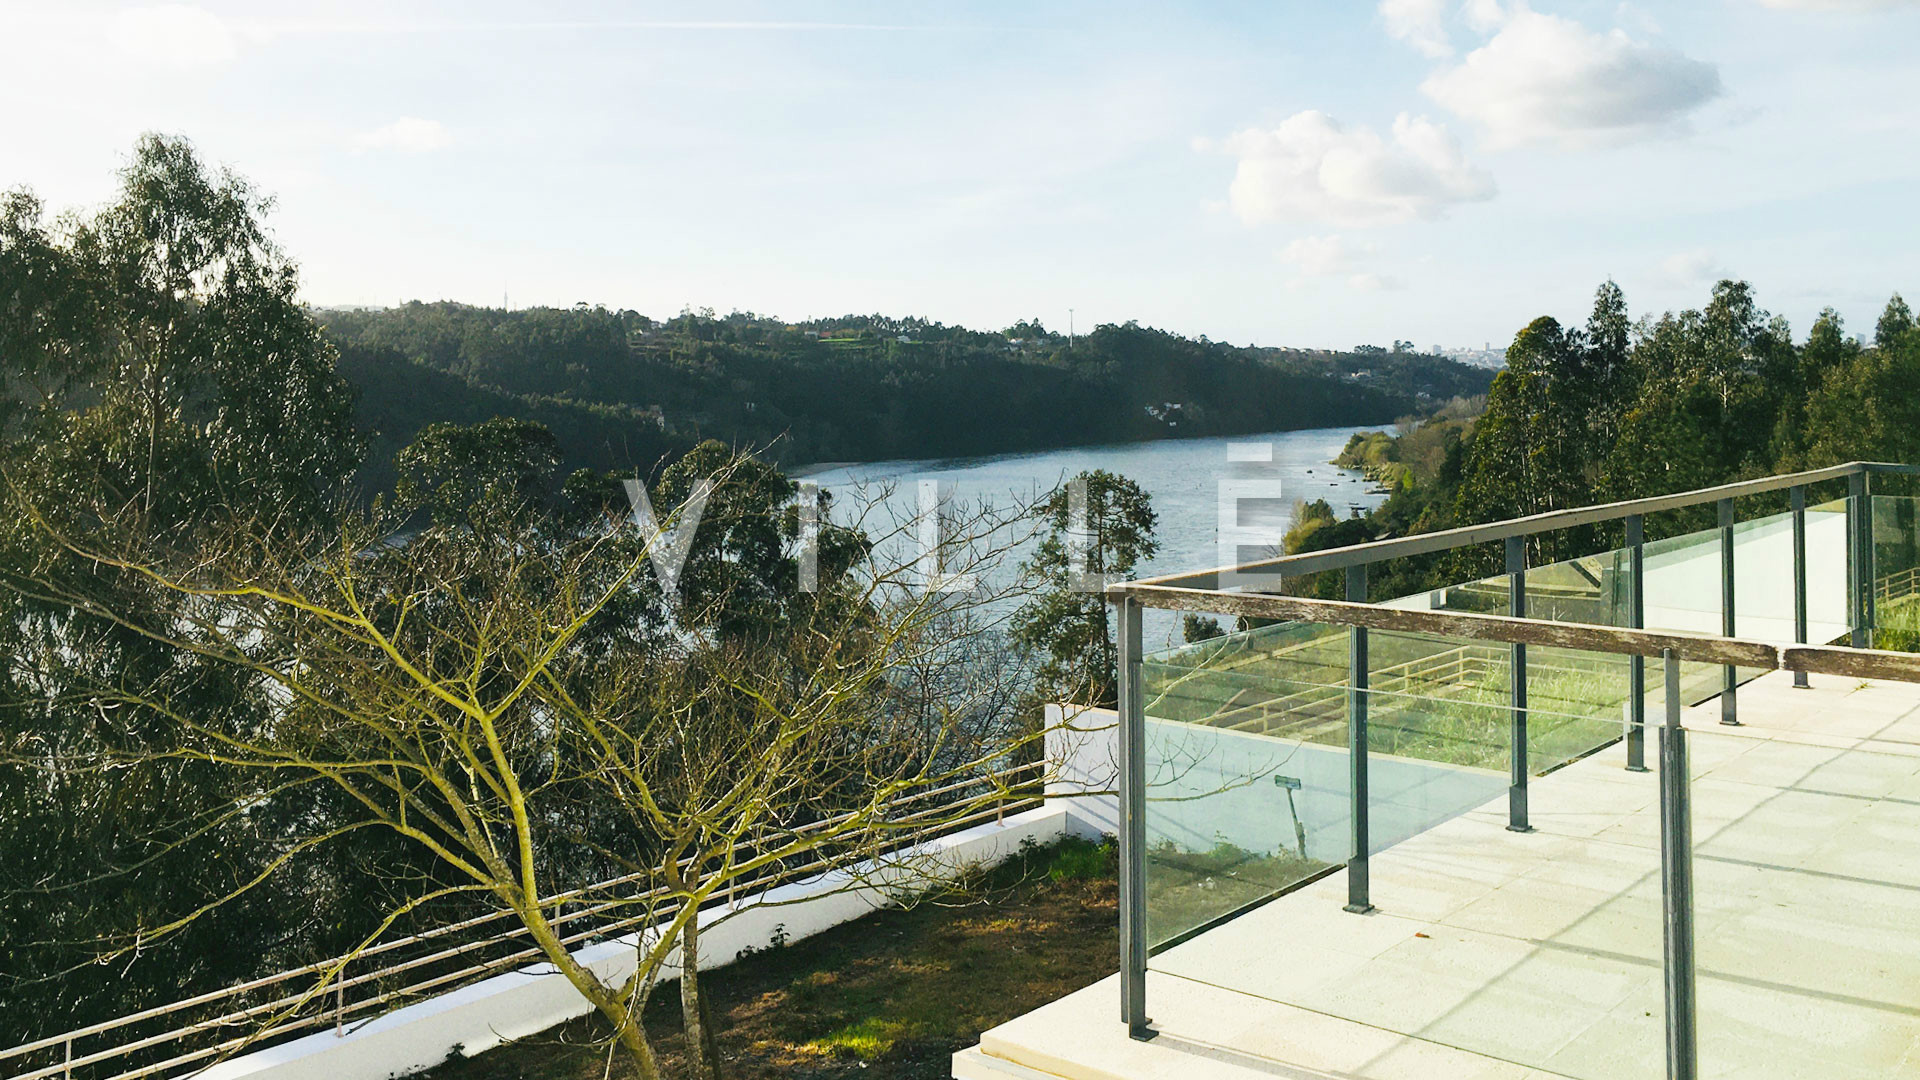 4 bedroom house with beautiful views to the river douro